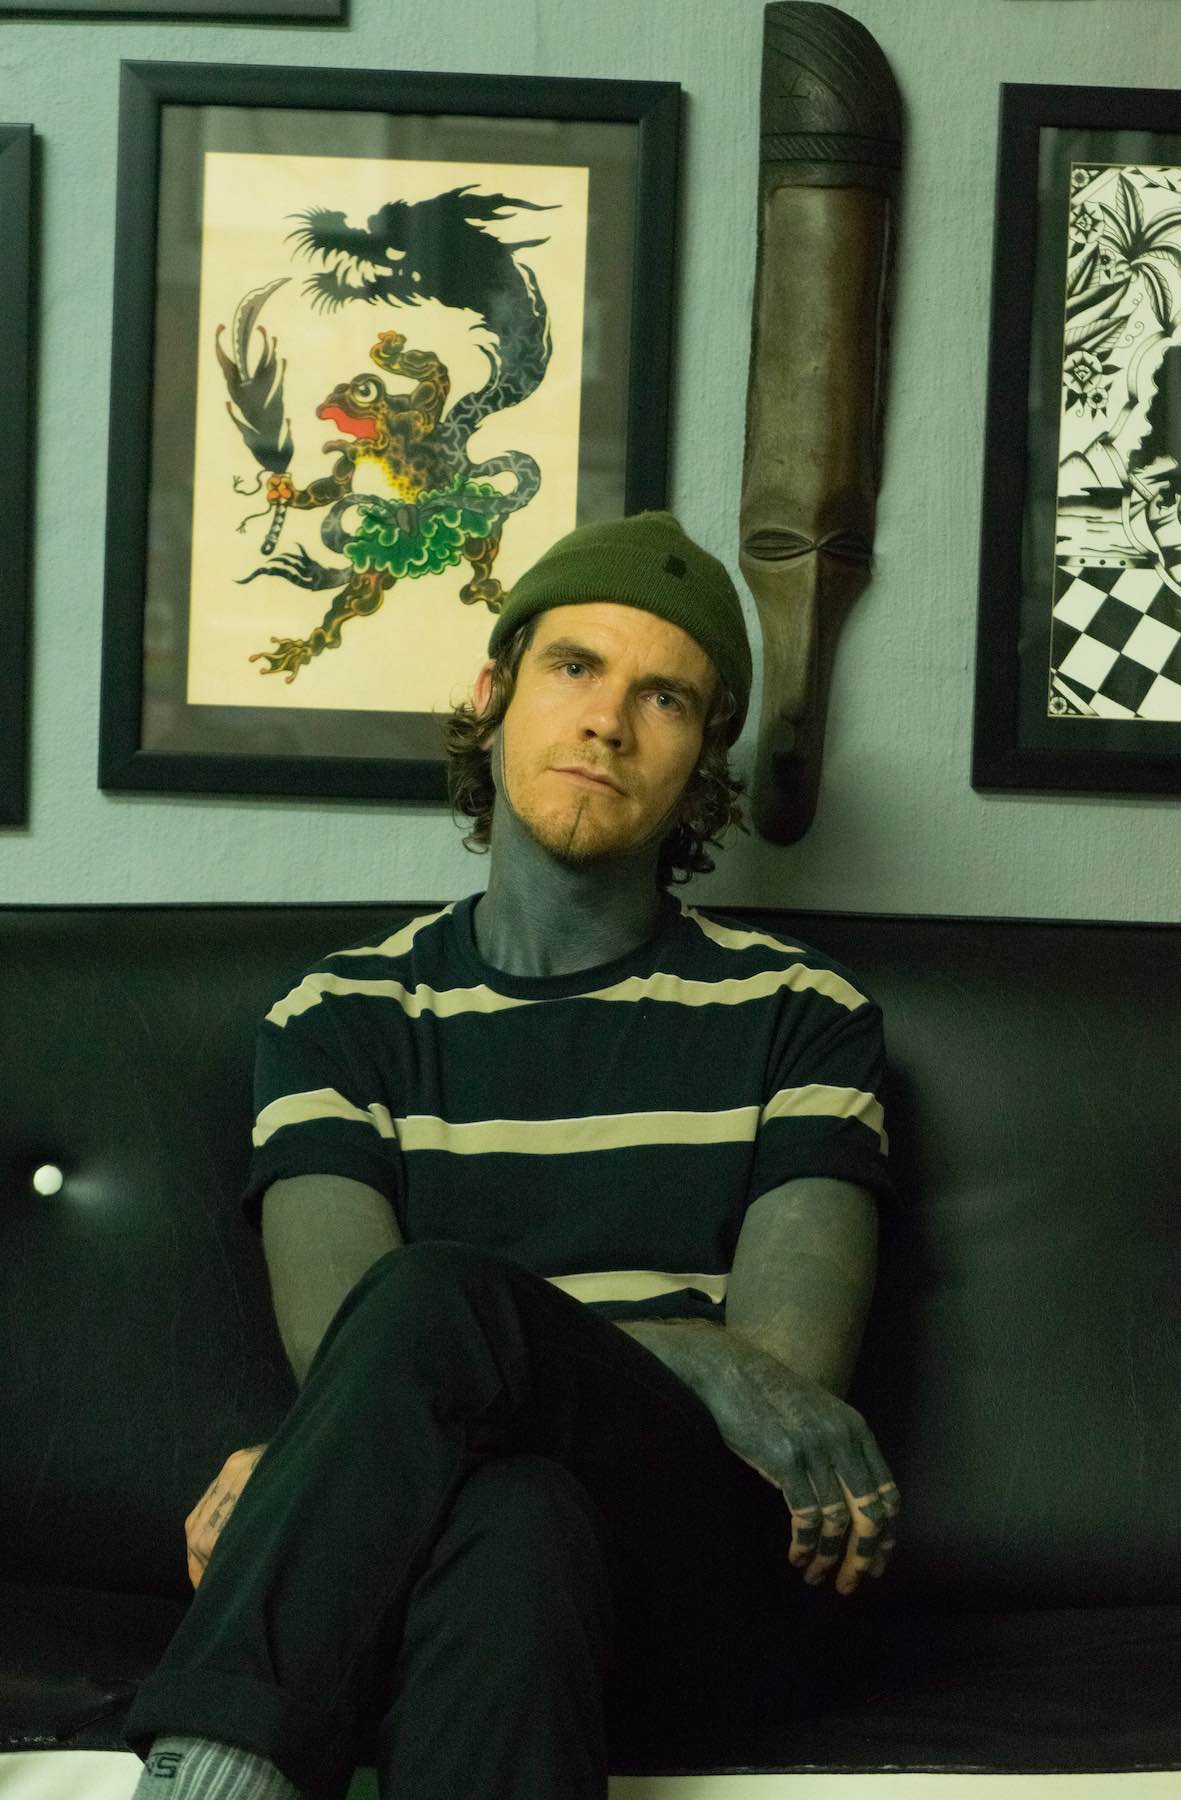 Introducing Tarzan as our Featured Tattoo Artist of the Week